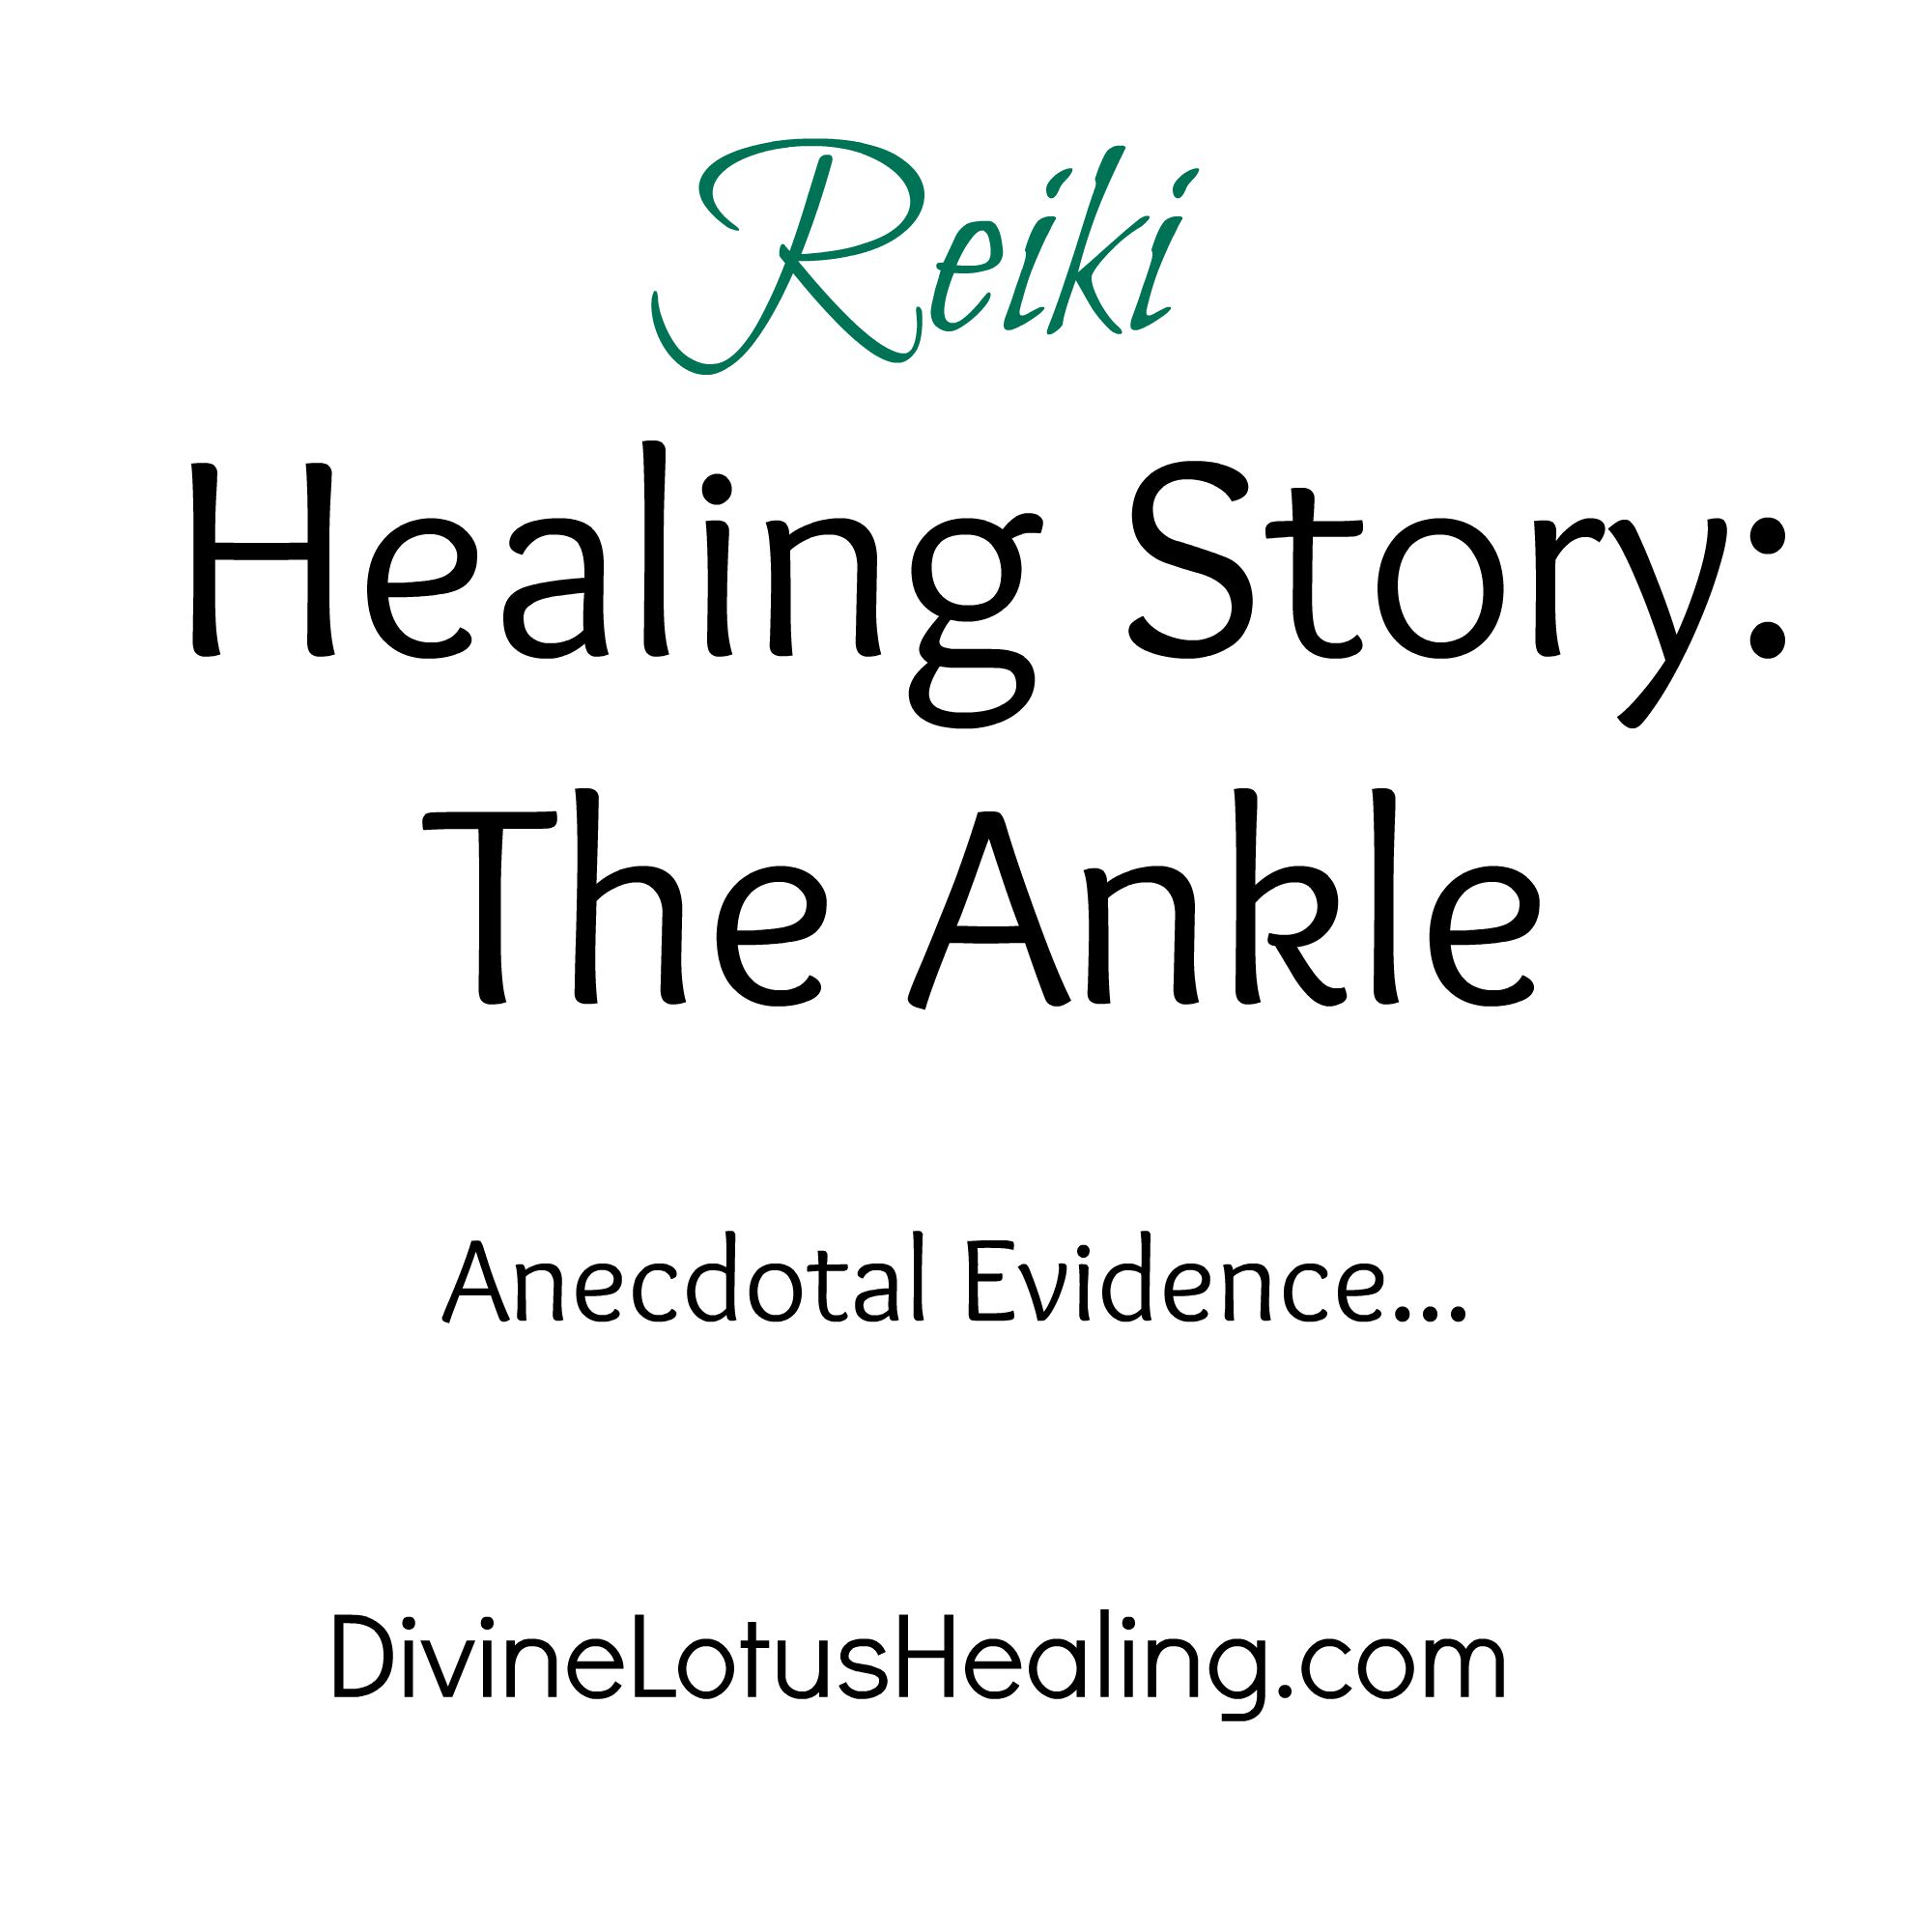 Divine Lotus Healing Reiki Healing Story the Ankle